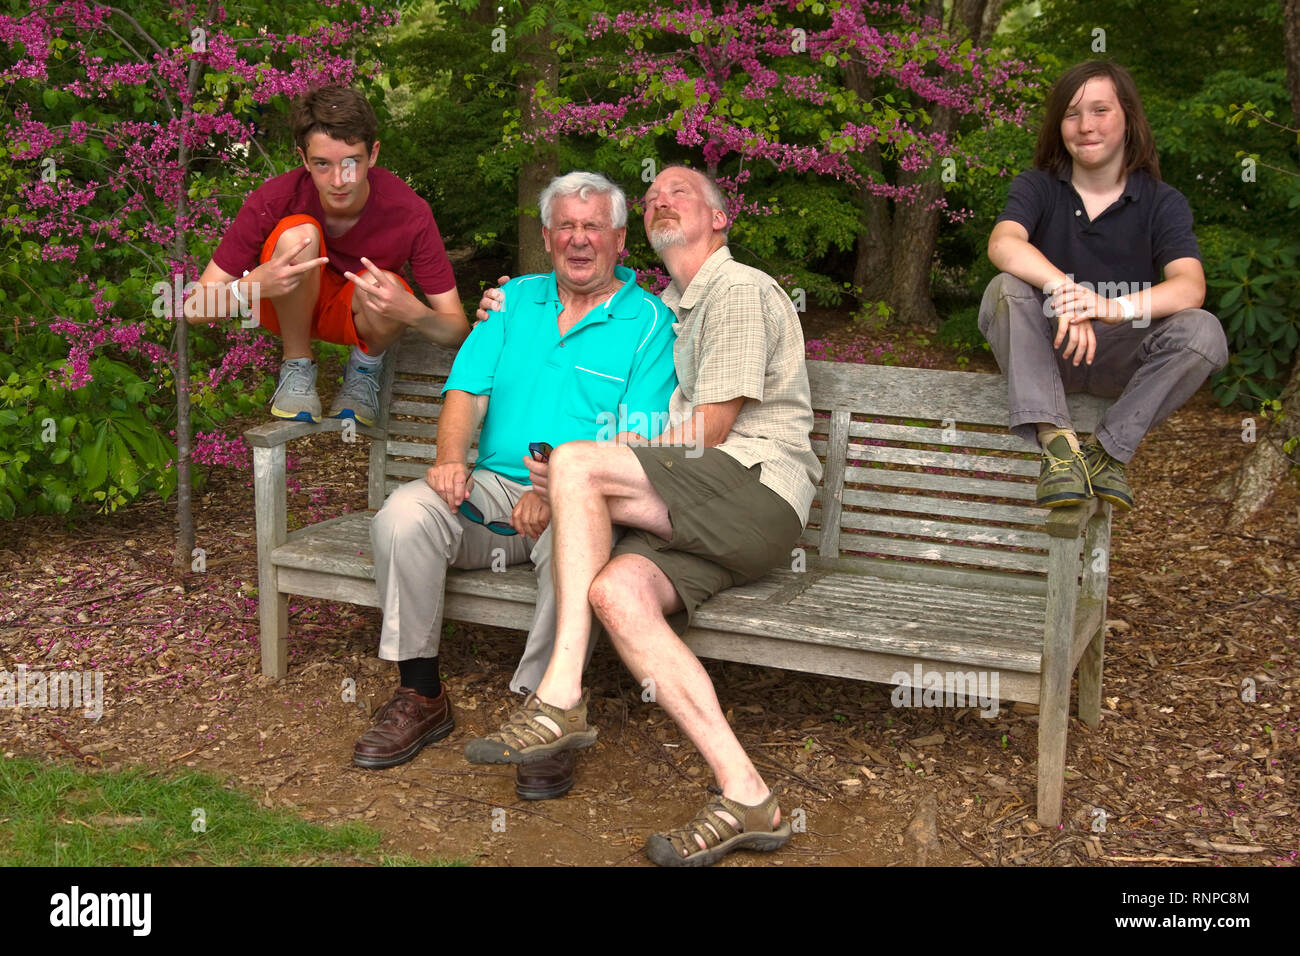 acting silly; 2 men; 2 boys; family; happy; wood bench; flowering trees; fun, grandfather, uncle, nephews, spring; horizontal; MR - Stock Image